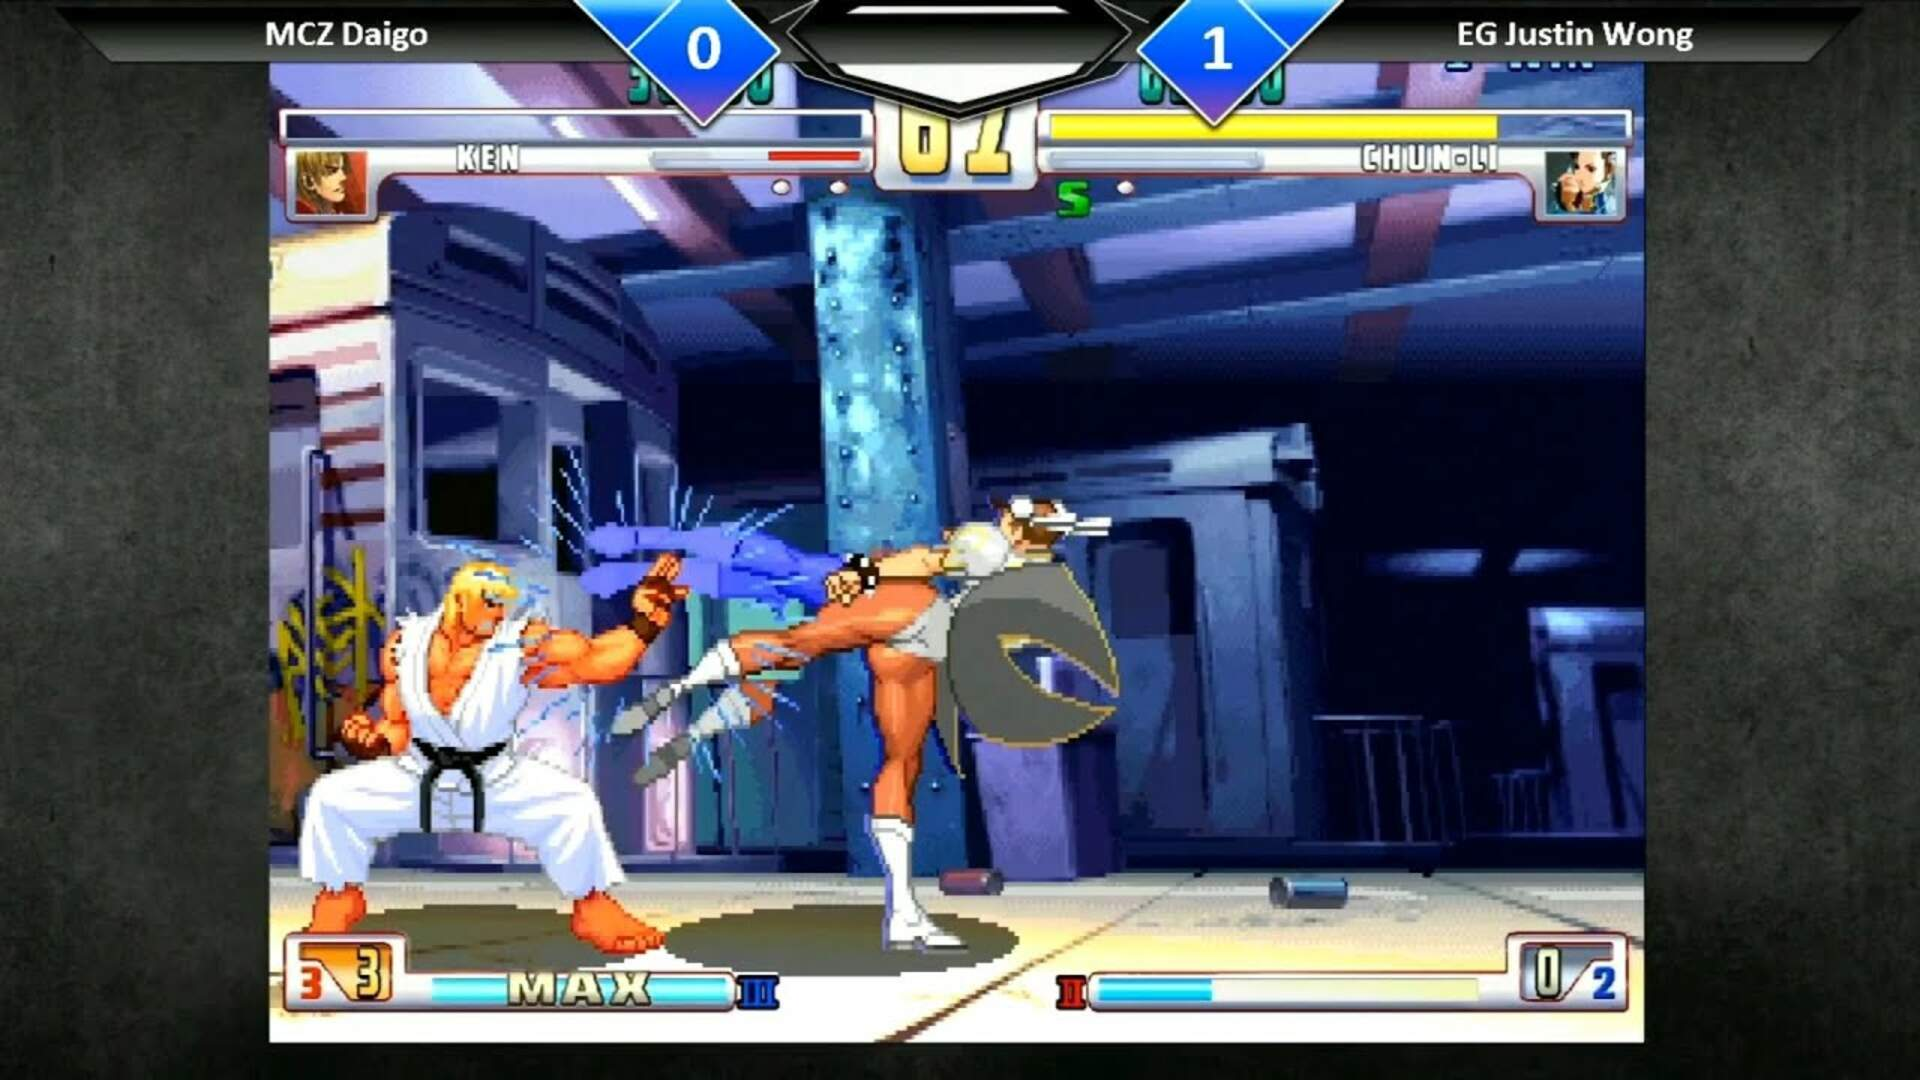 Street Fighter 3's Most Famous Evo 2004 Moment Rediscovered in New Video